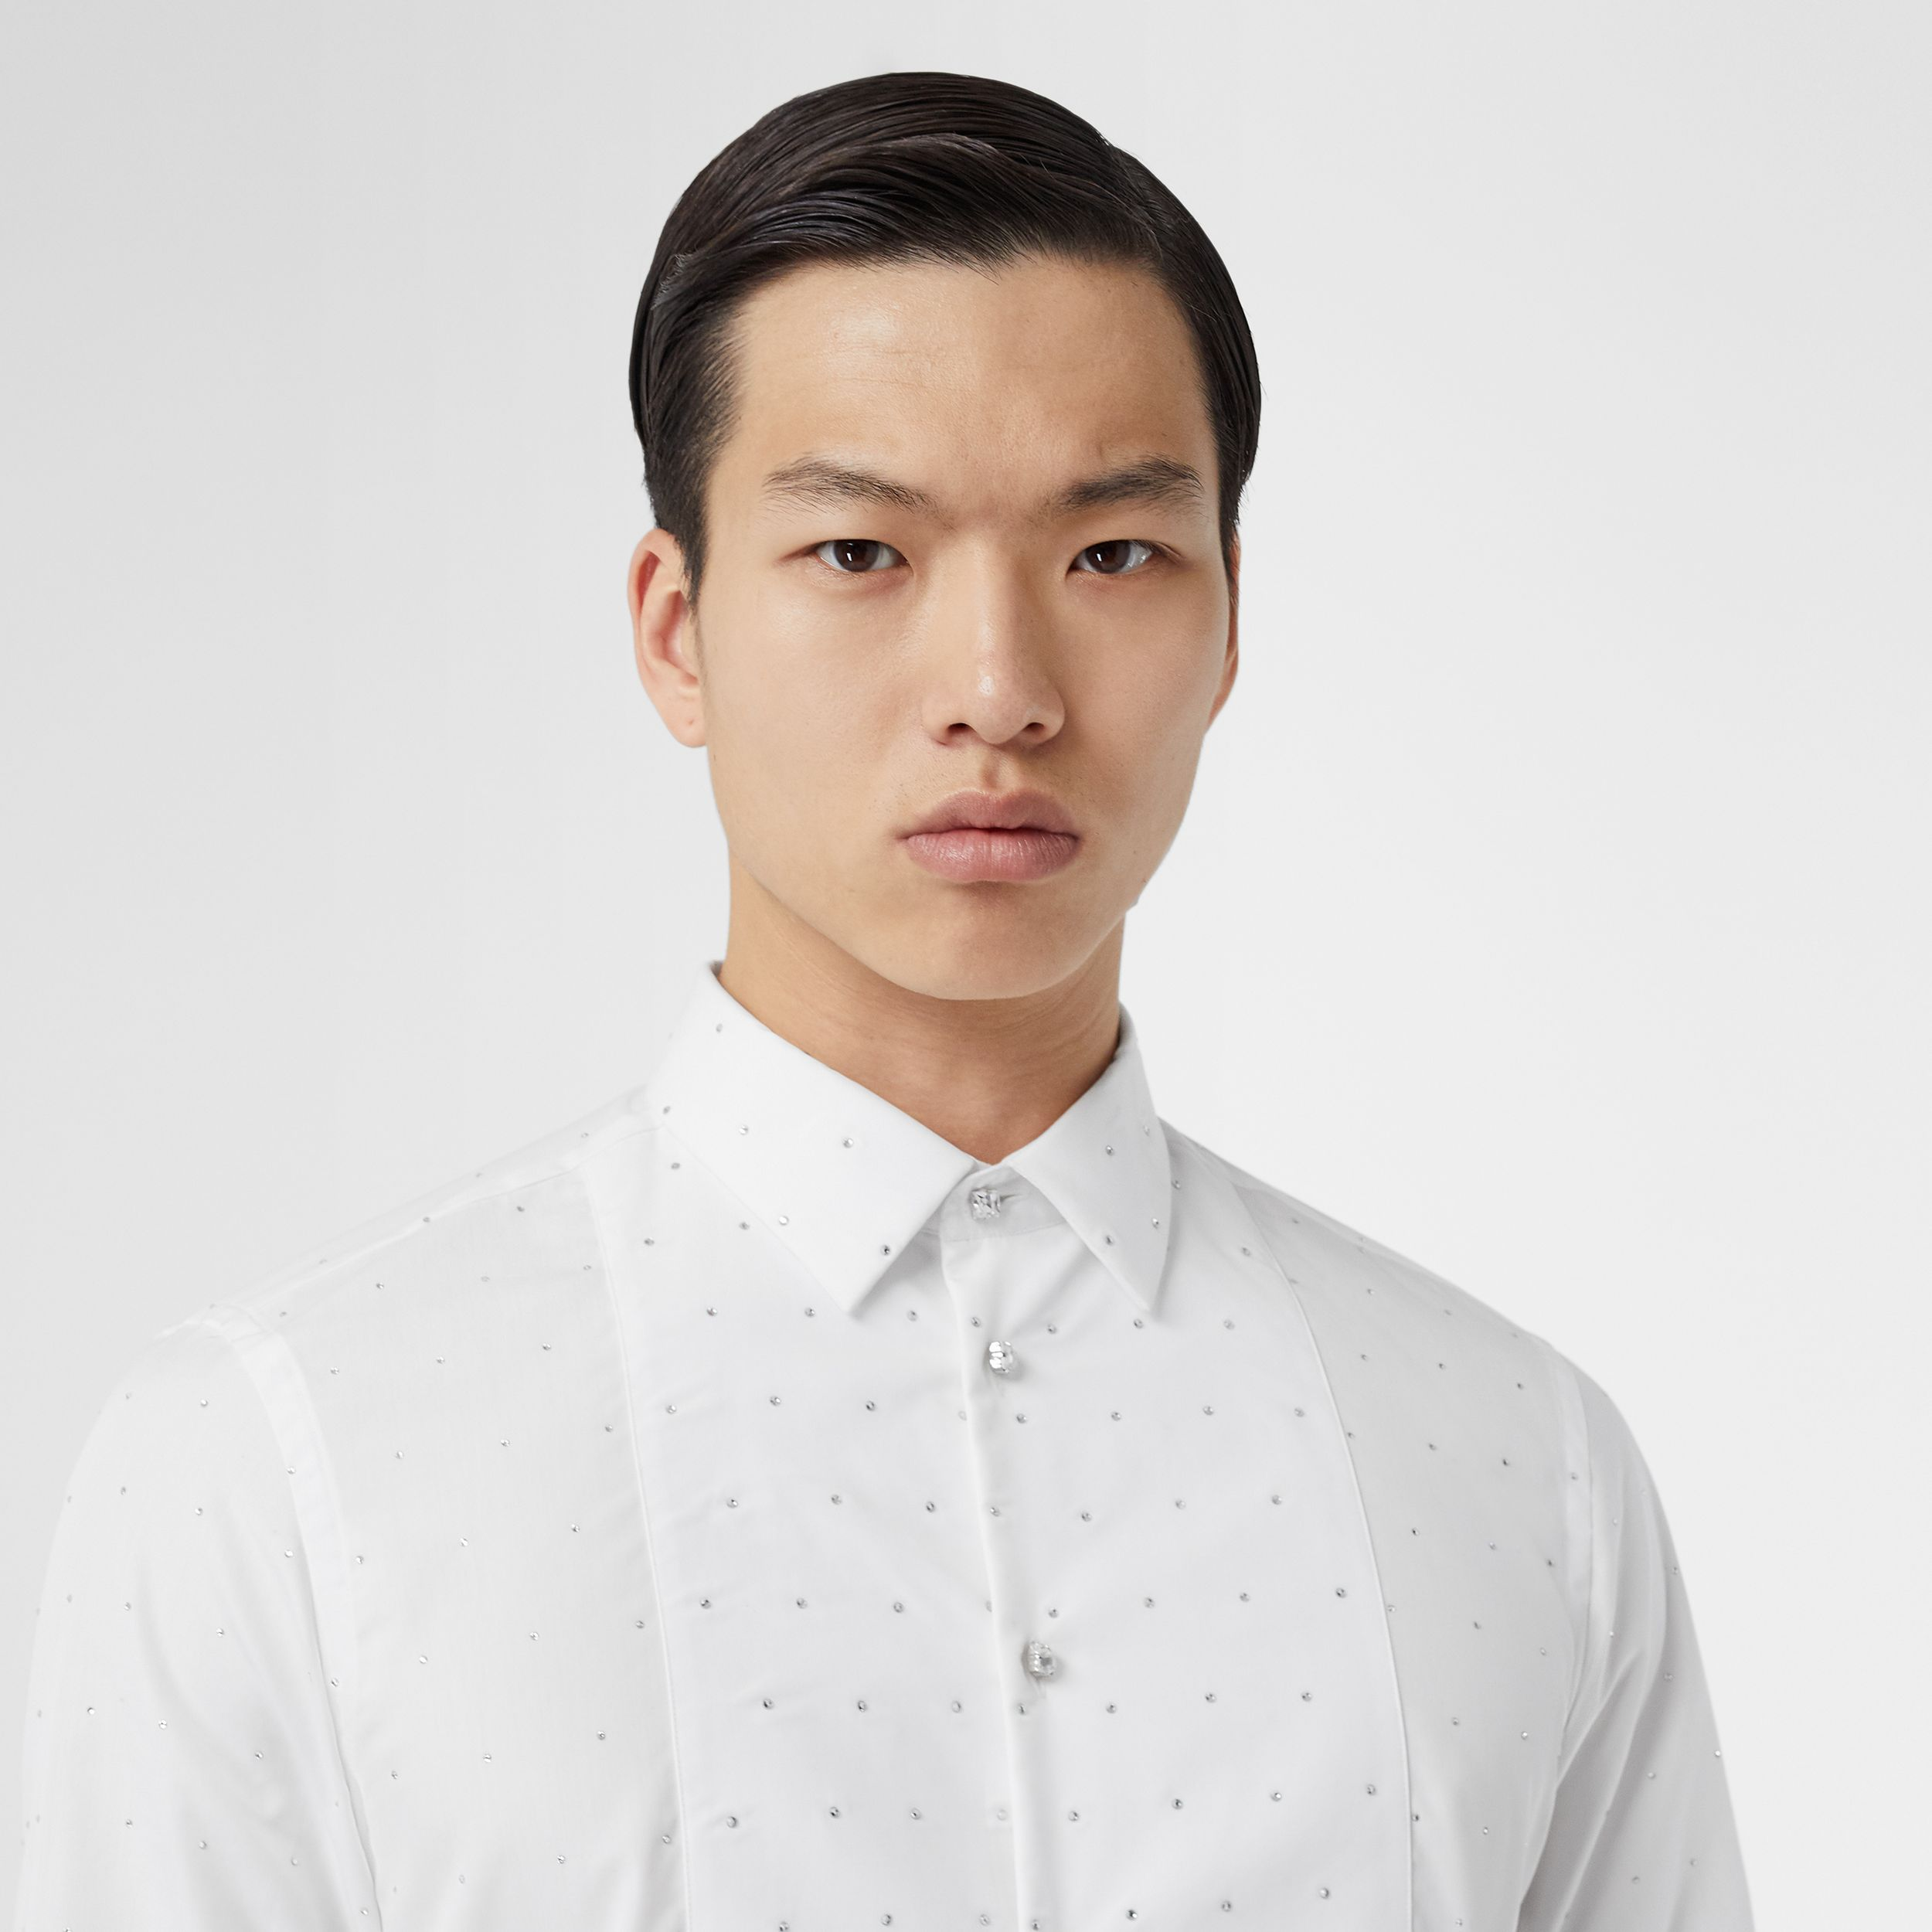 Embellished Cotton Poplin Dress Shirt in Optic White - Men | Burberry Hong Kong S.A.R. - 2